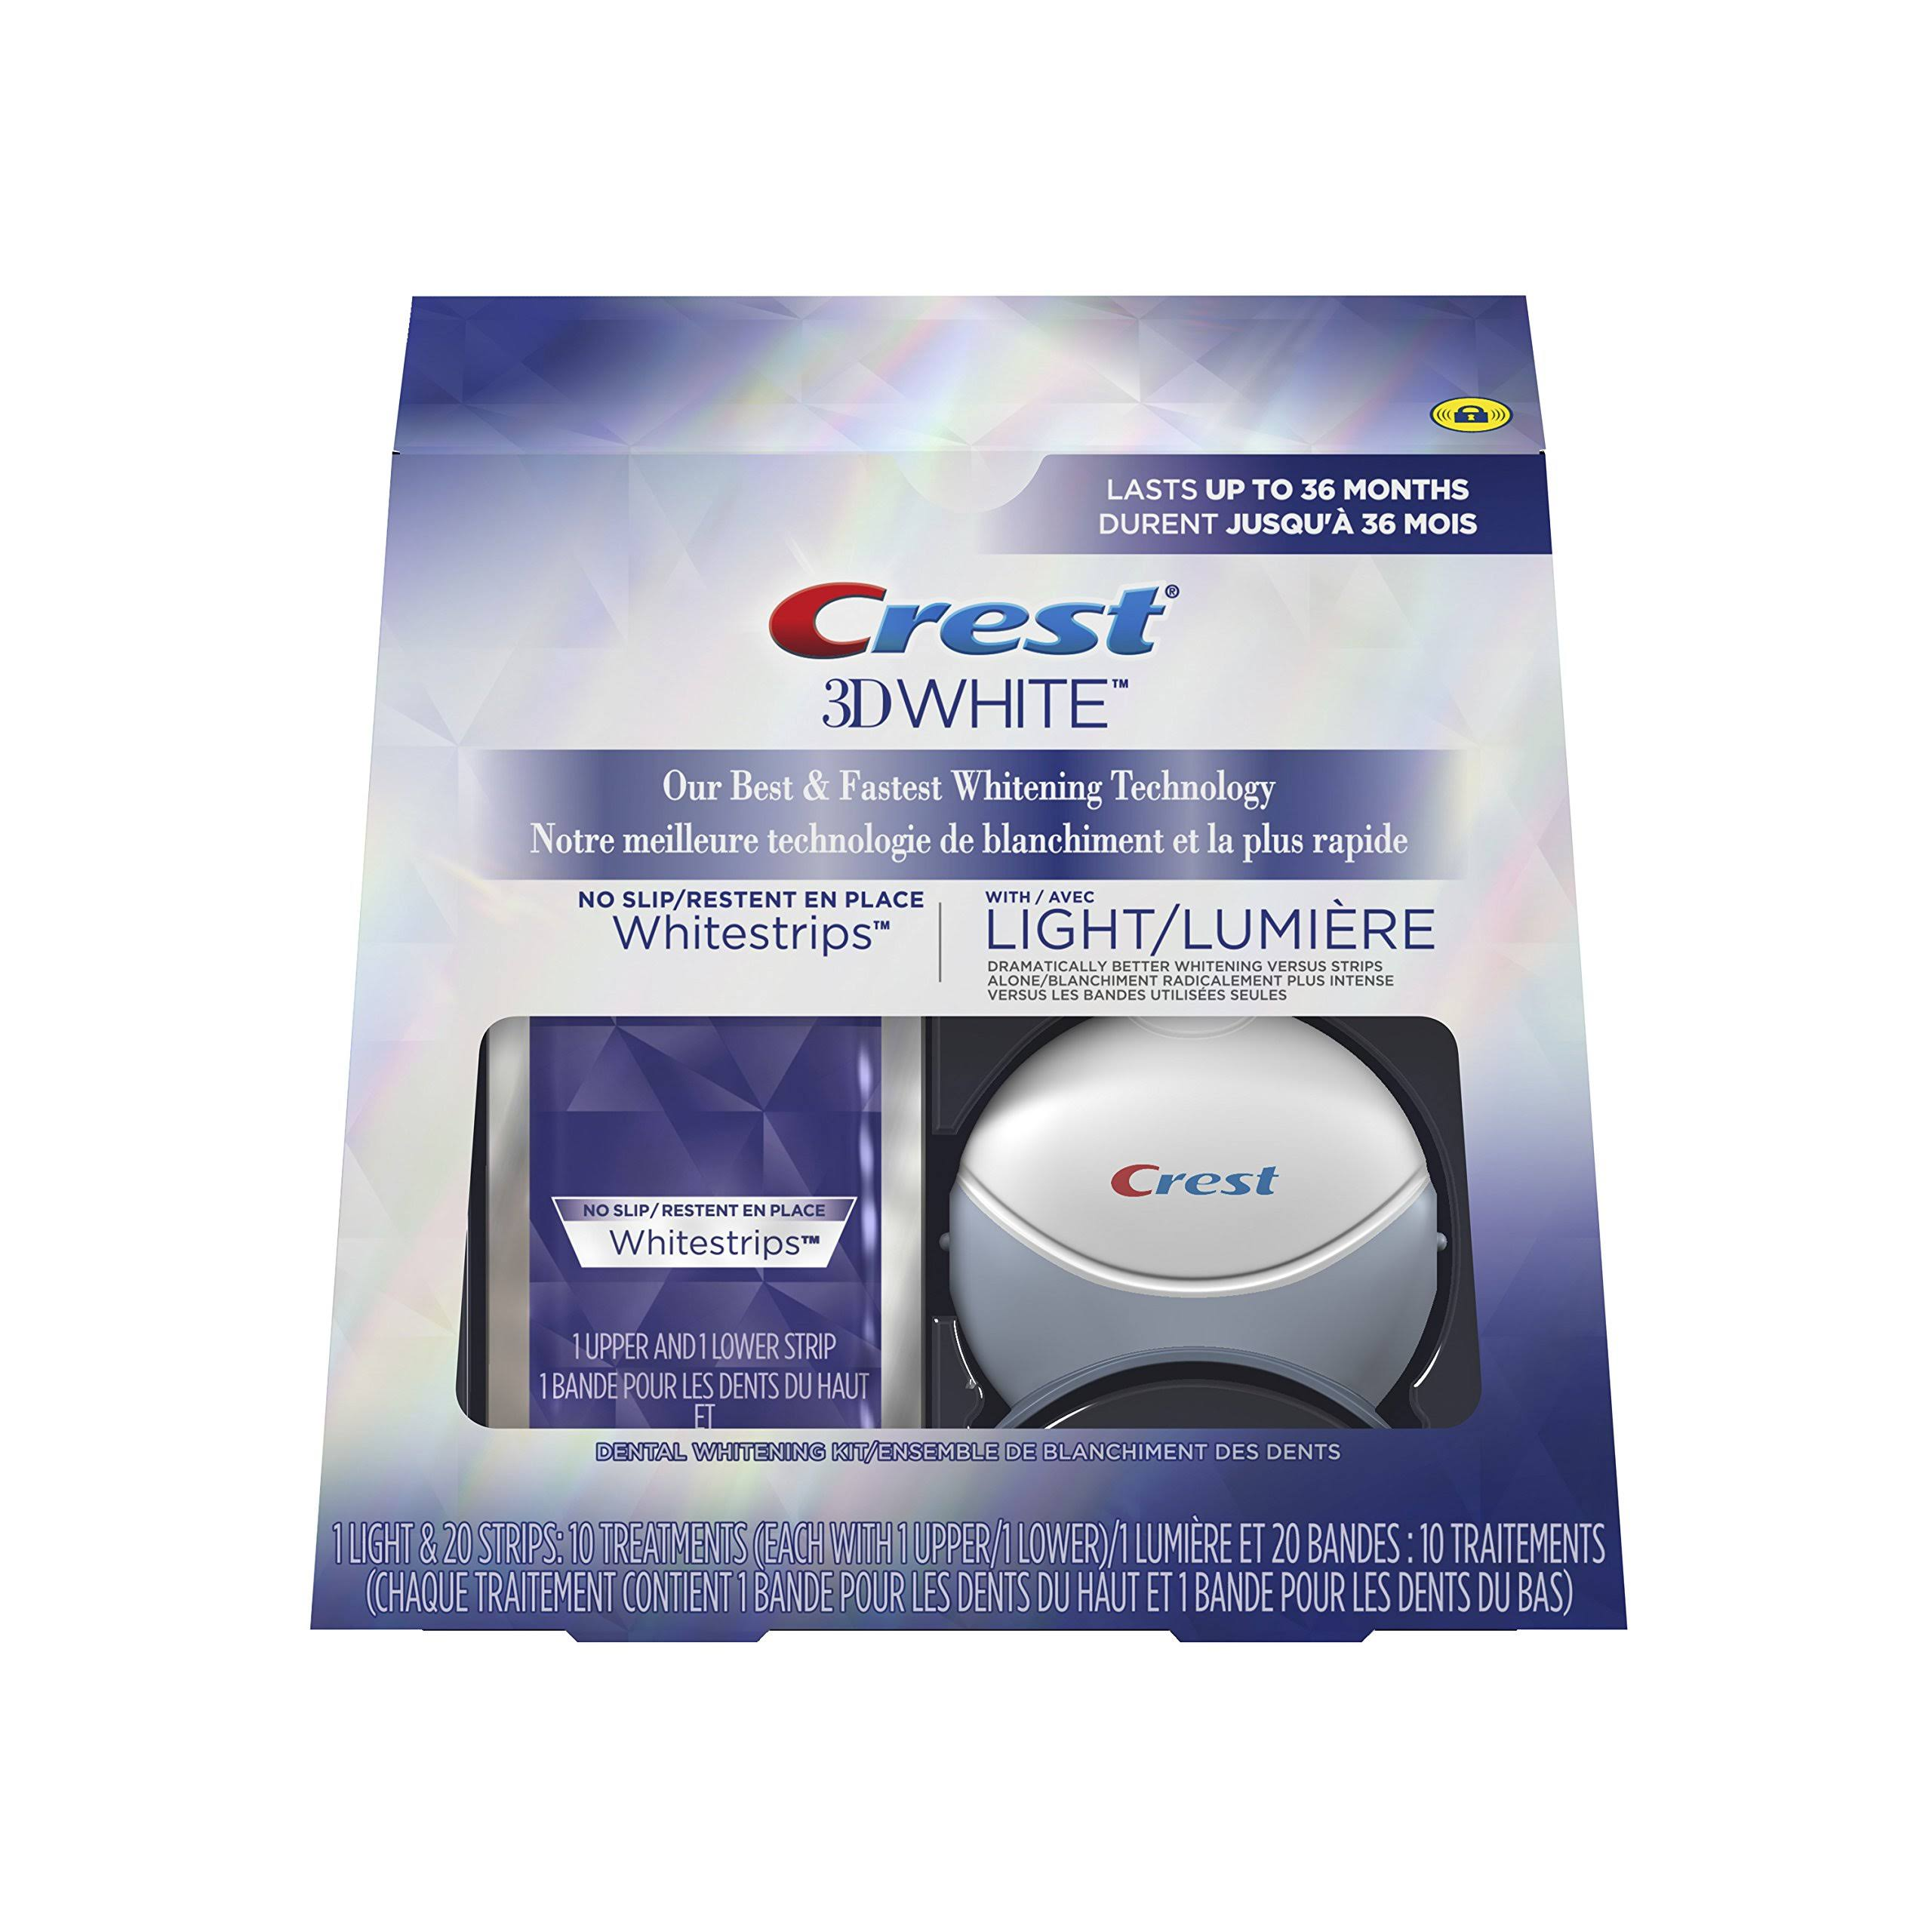 Crest 3D White Whitestrips - with Light, 10 Units